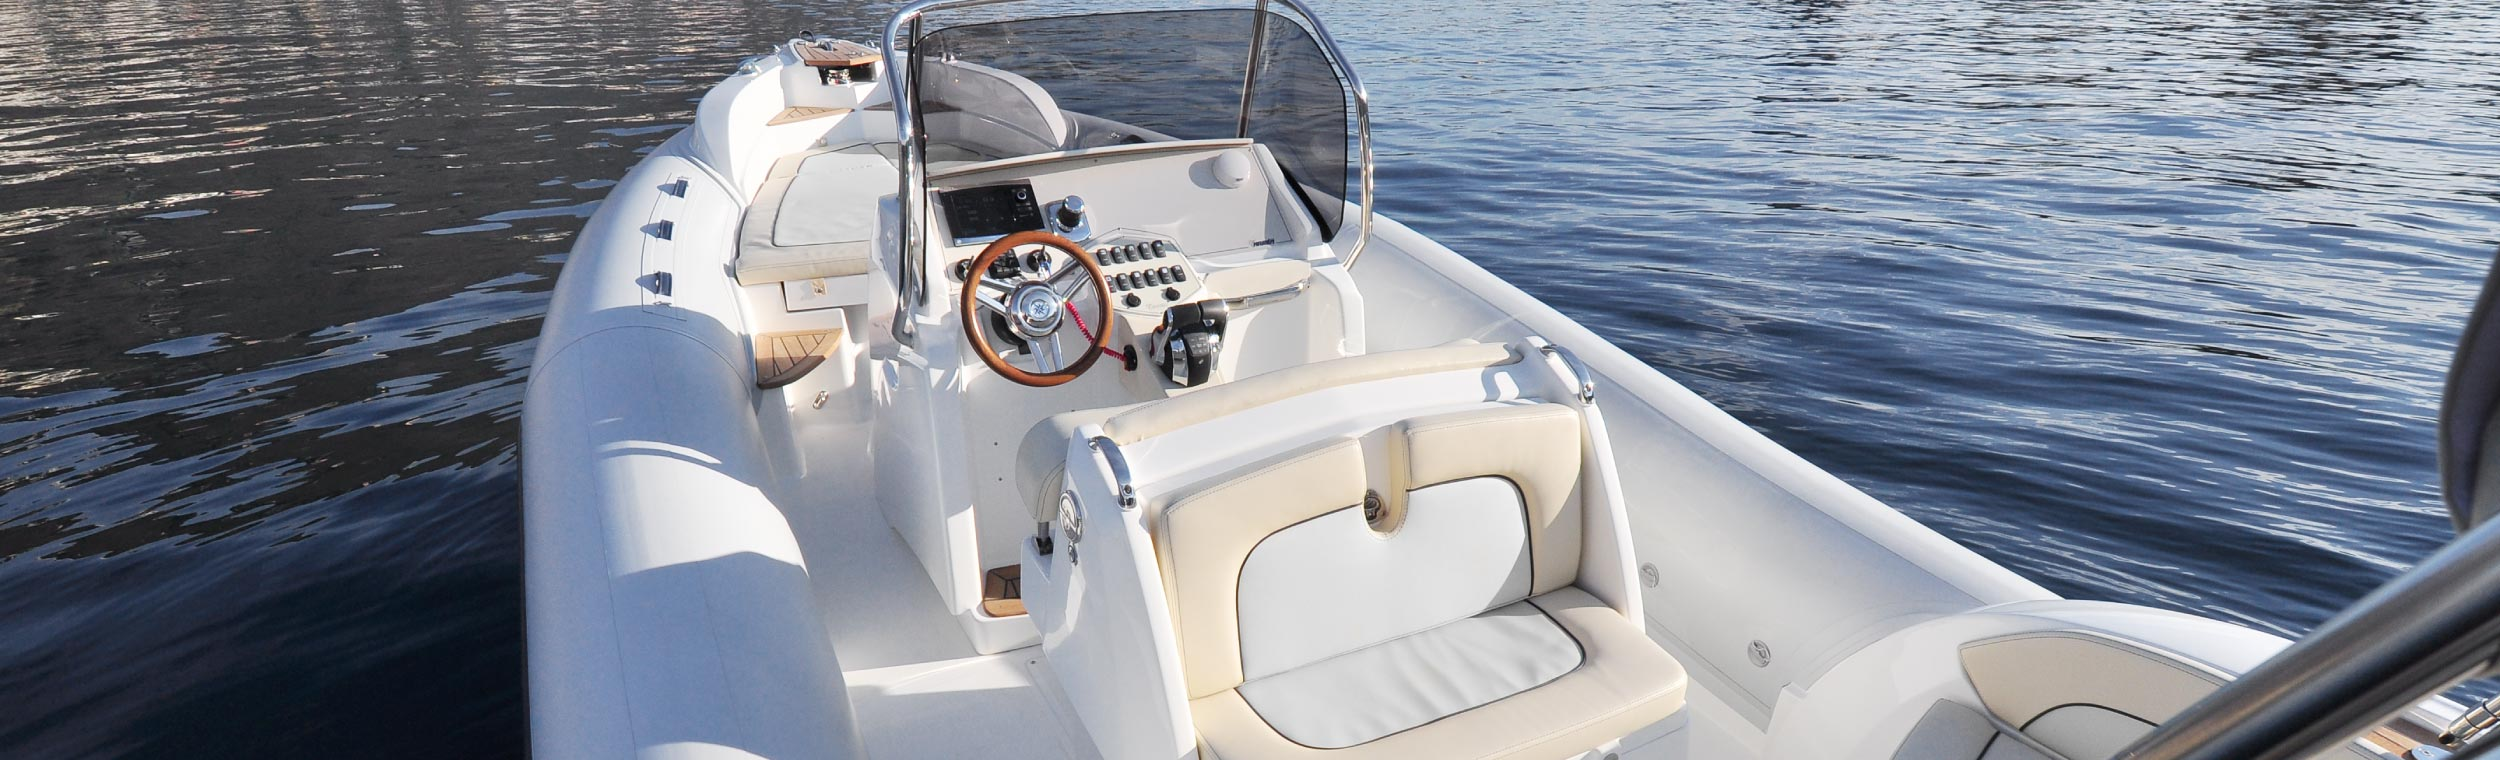 Marlin Boat - Outboard model  298